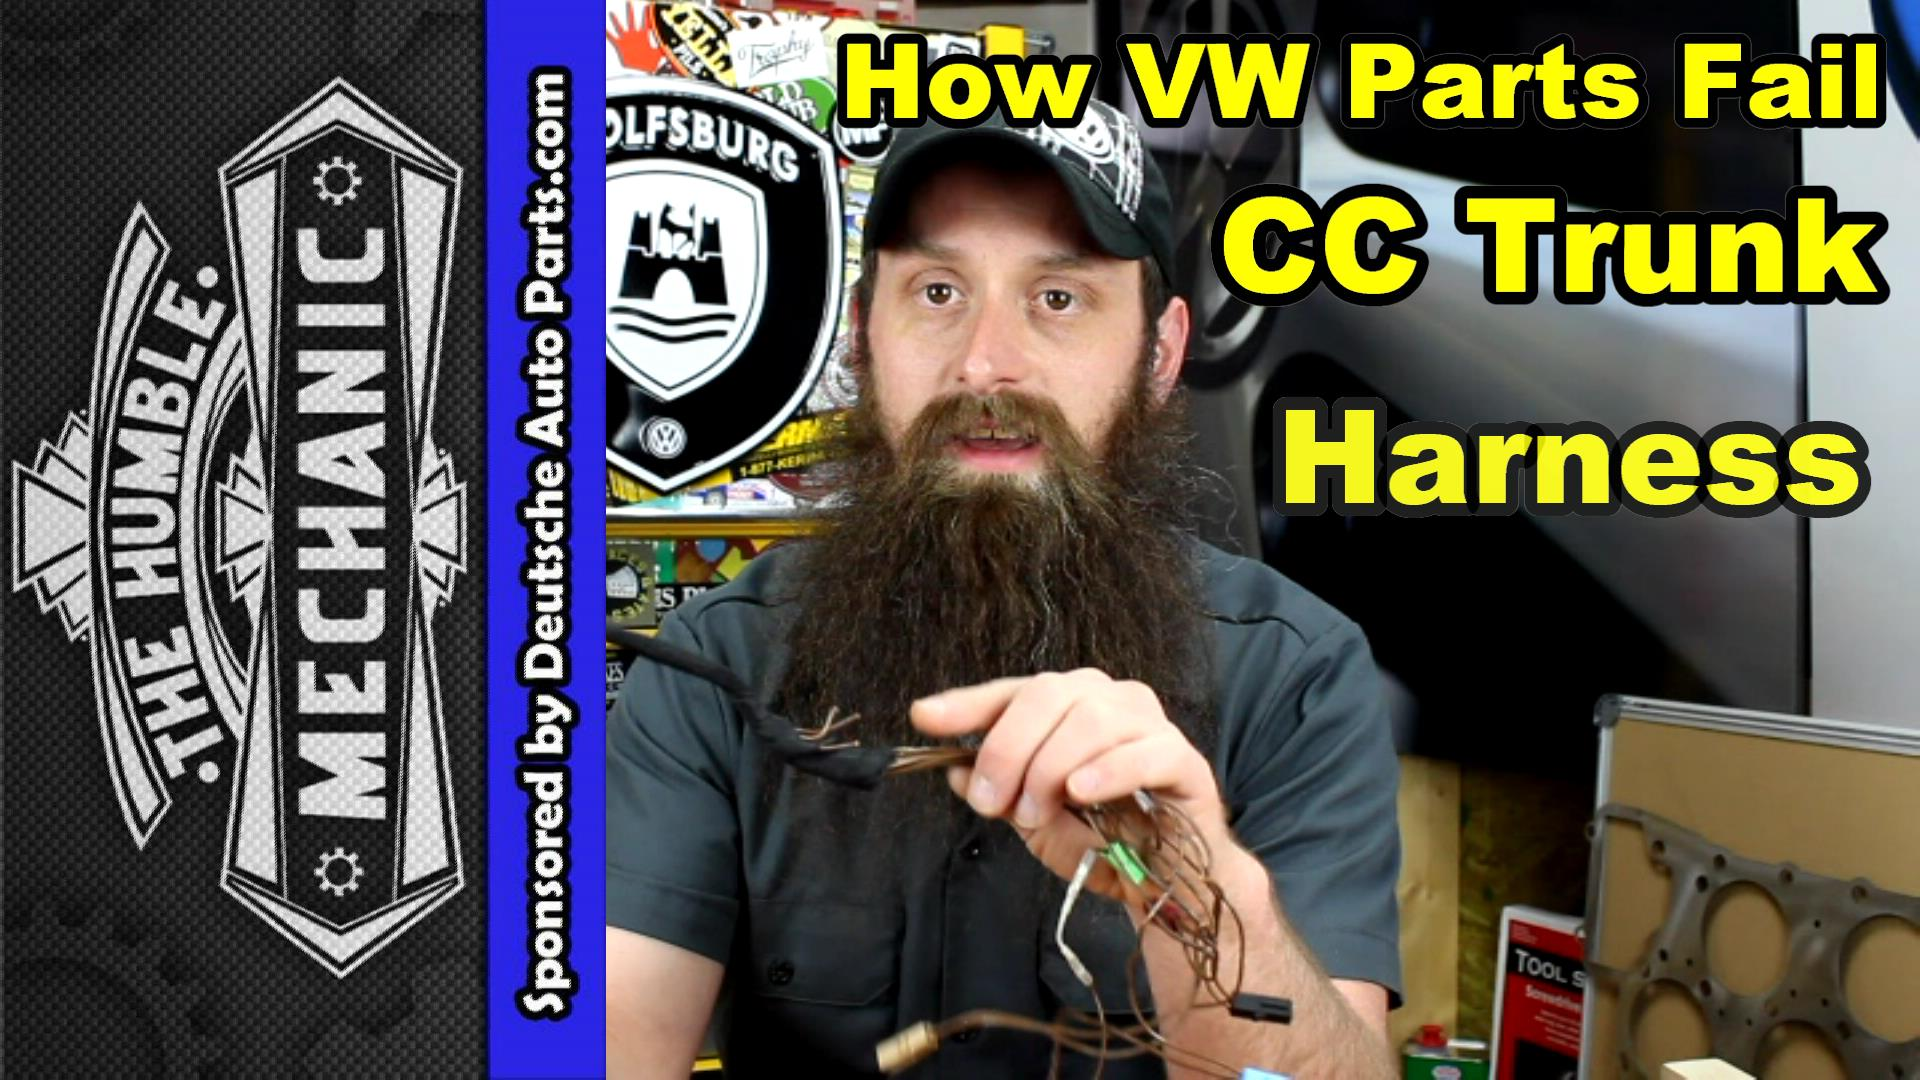 How The VW CC Trunk Harness Fails ~ Video